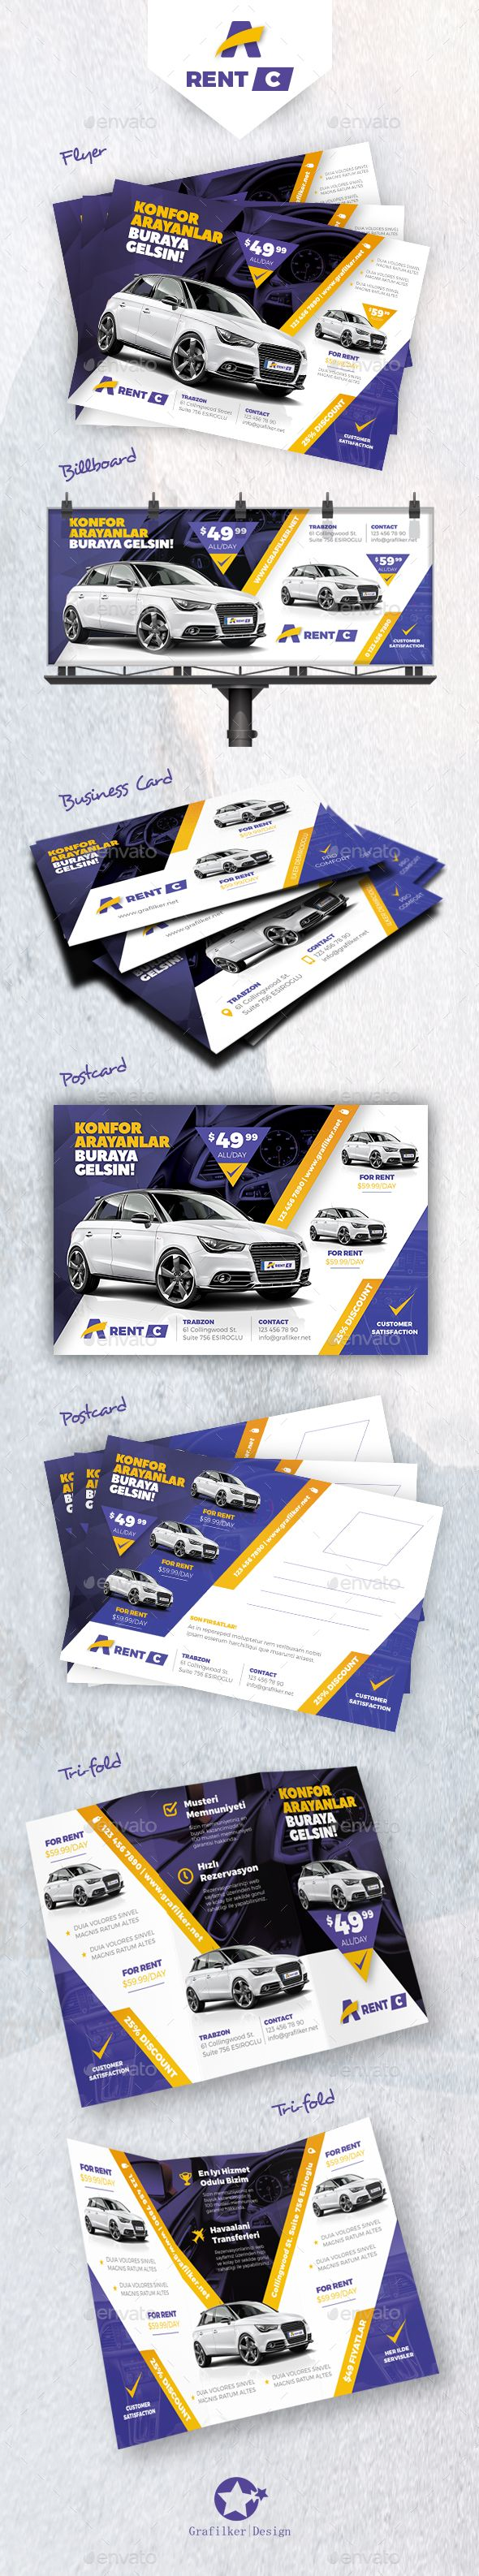 Ren A Car Bundle Templates  — PSD Template #business #motorcycles • Download ➝ https://graphicriver.net/item/ren-a-car-bundle-templates/18069173?ref=pxcr